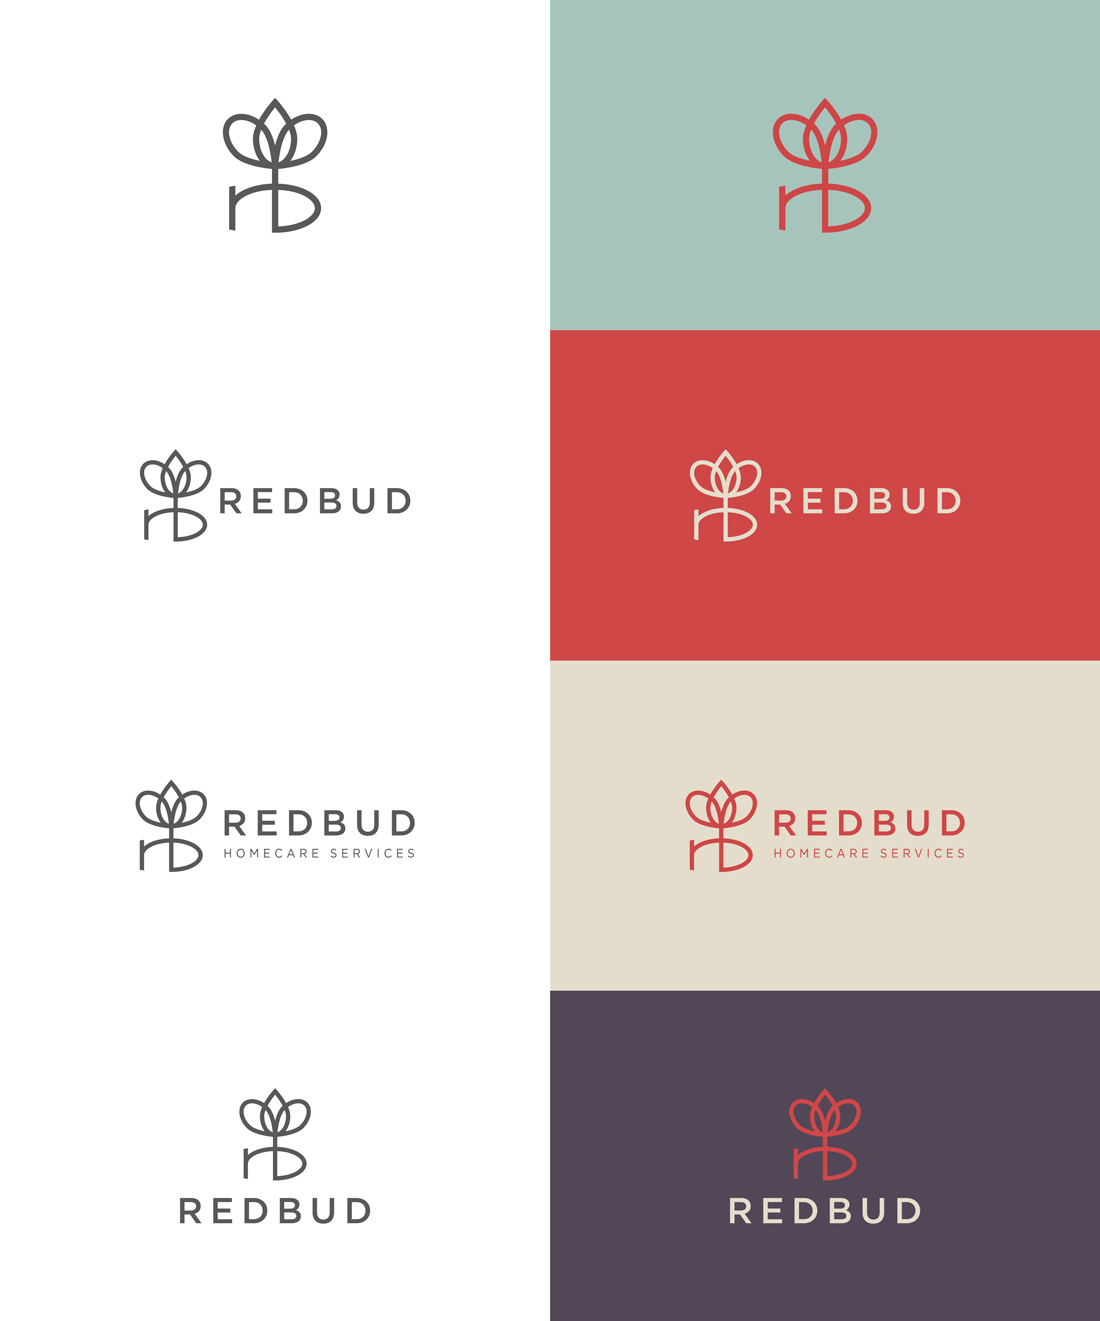 RedBud HomeCare Services logo variations